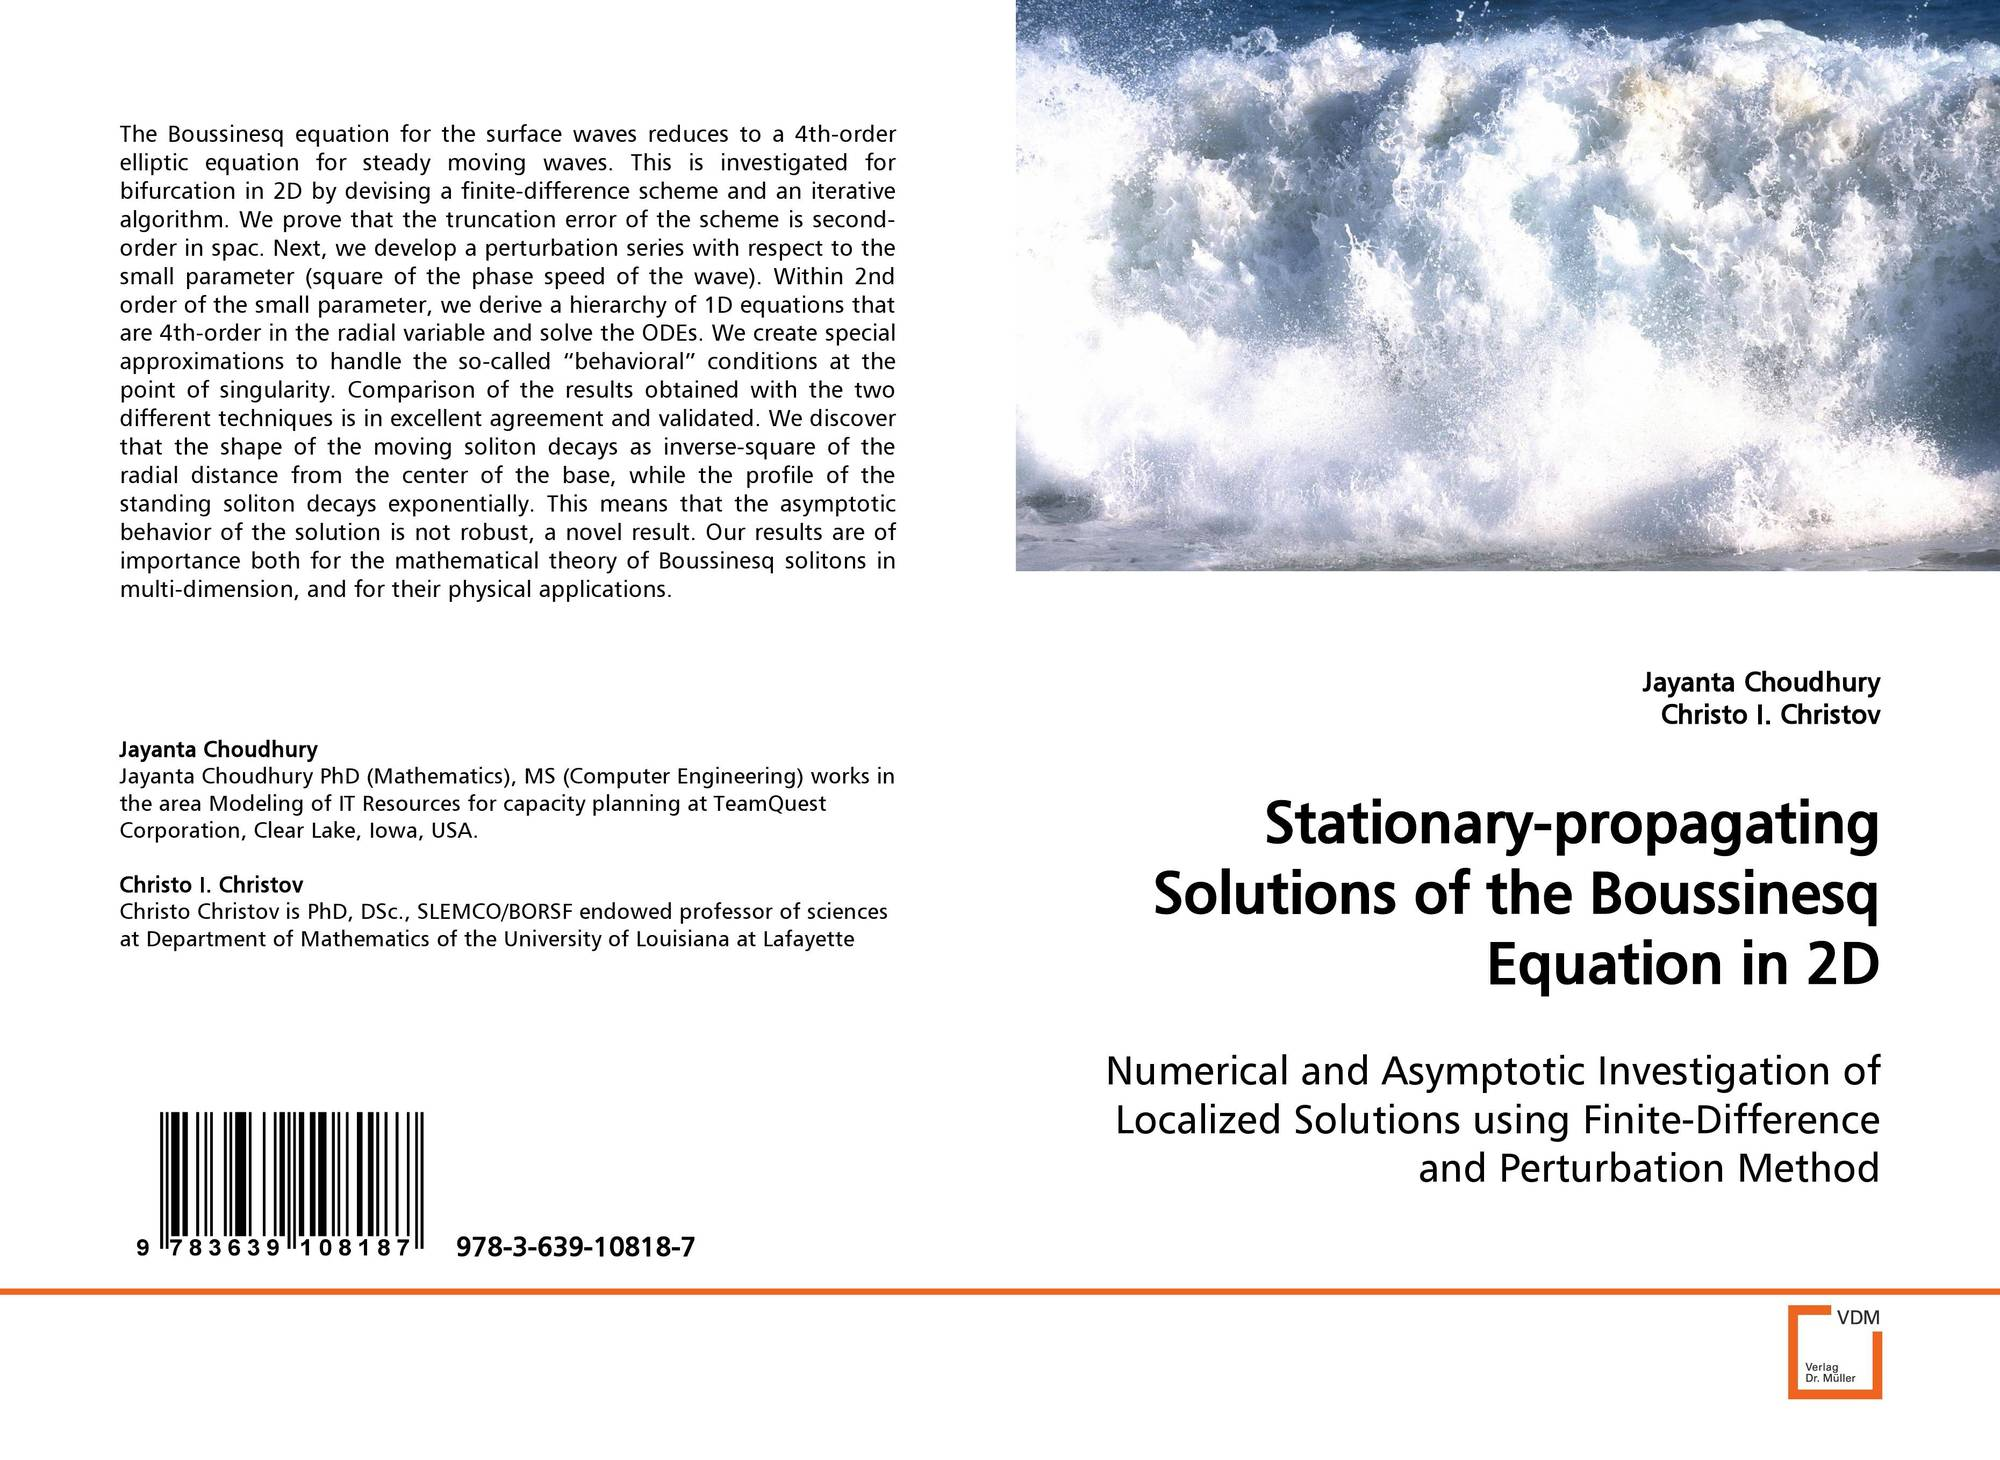 Stationary-propagating Solutions of the BoussinesqEquation in 2D